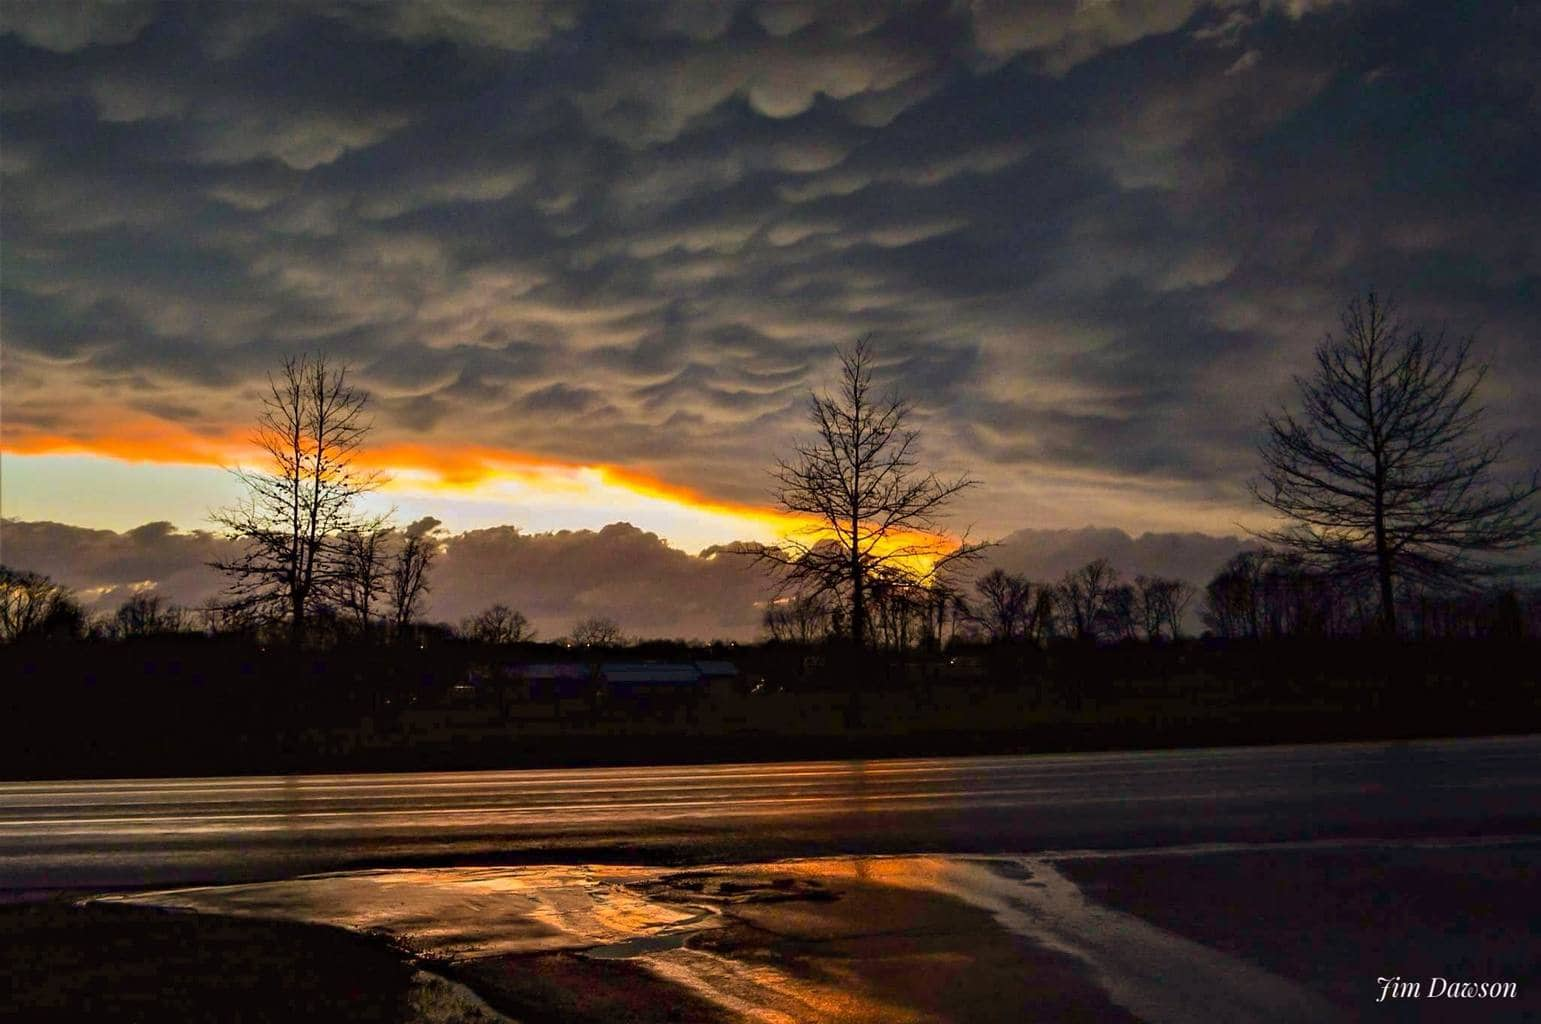 After the storm. Mammatus clouds at the tail of a thunderstorm,Georgetown Kentucky Wednesday night .